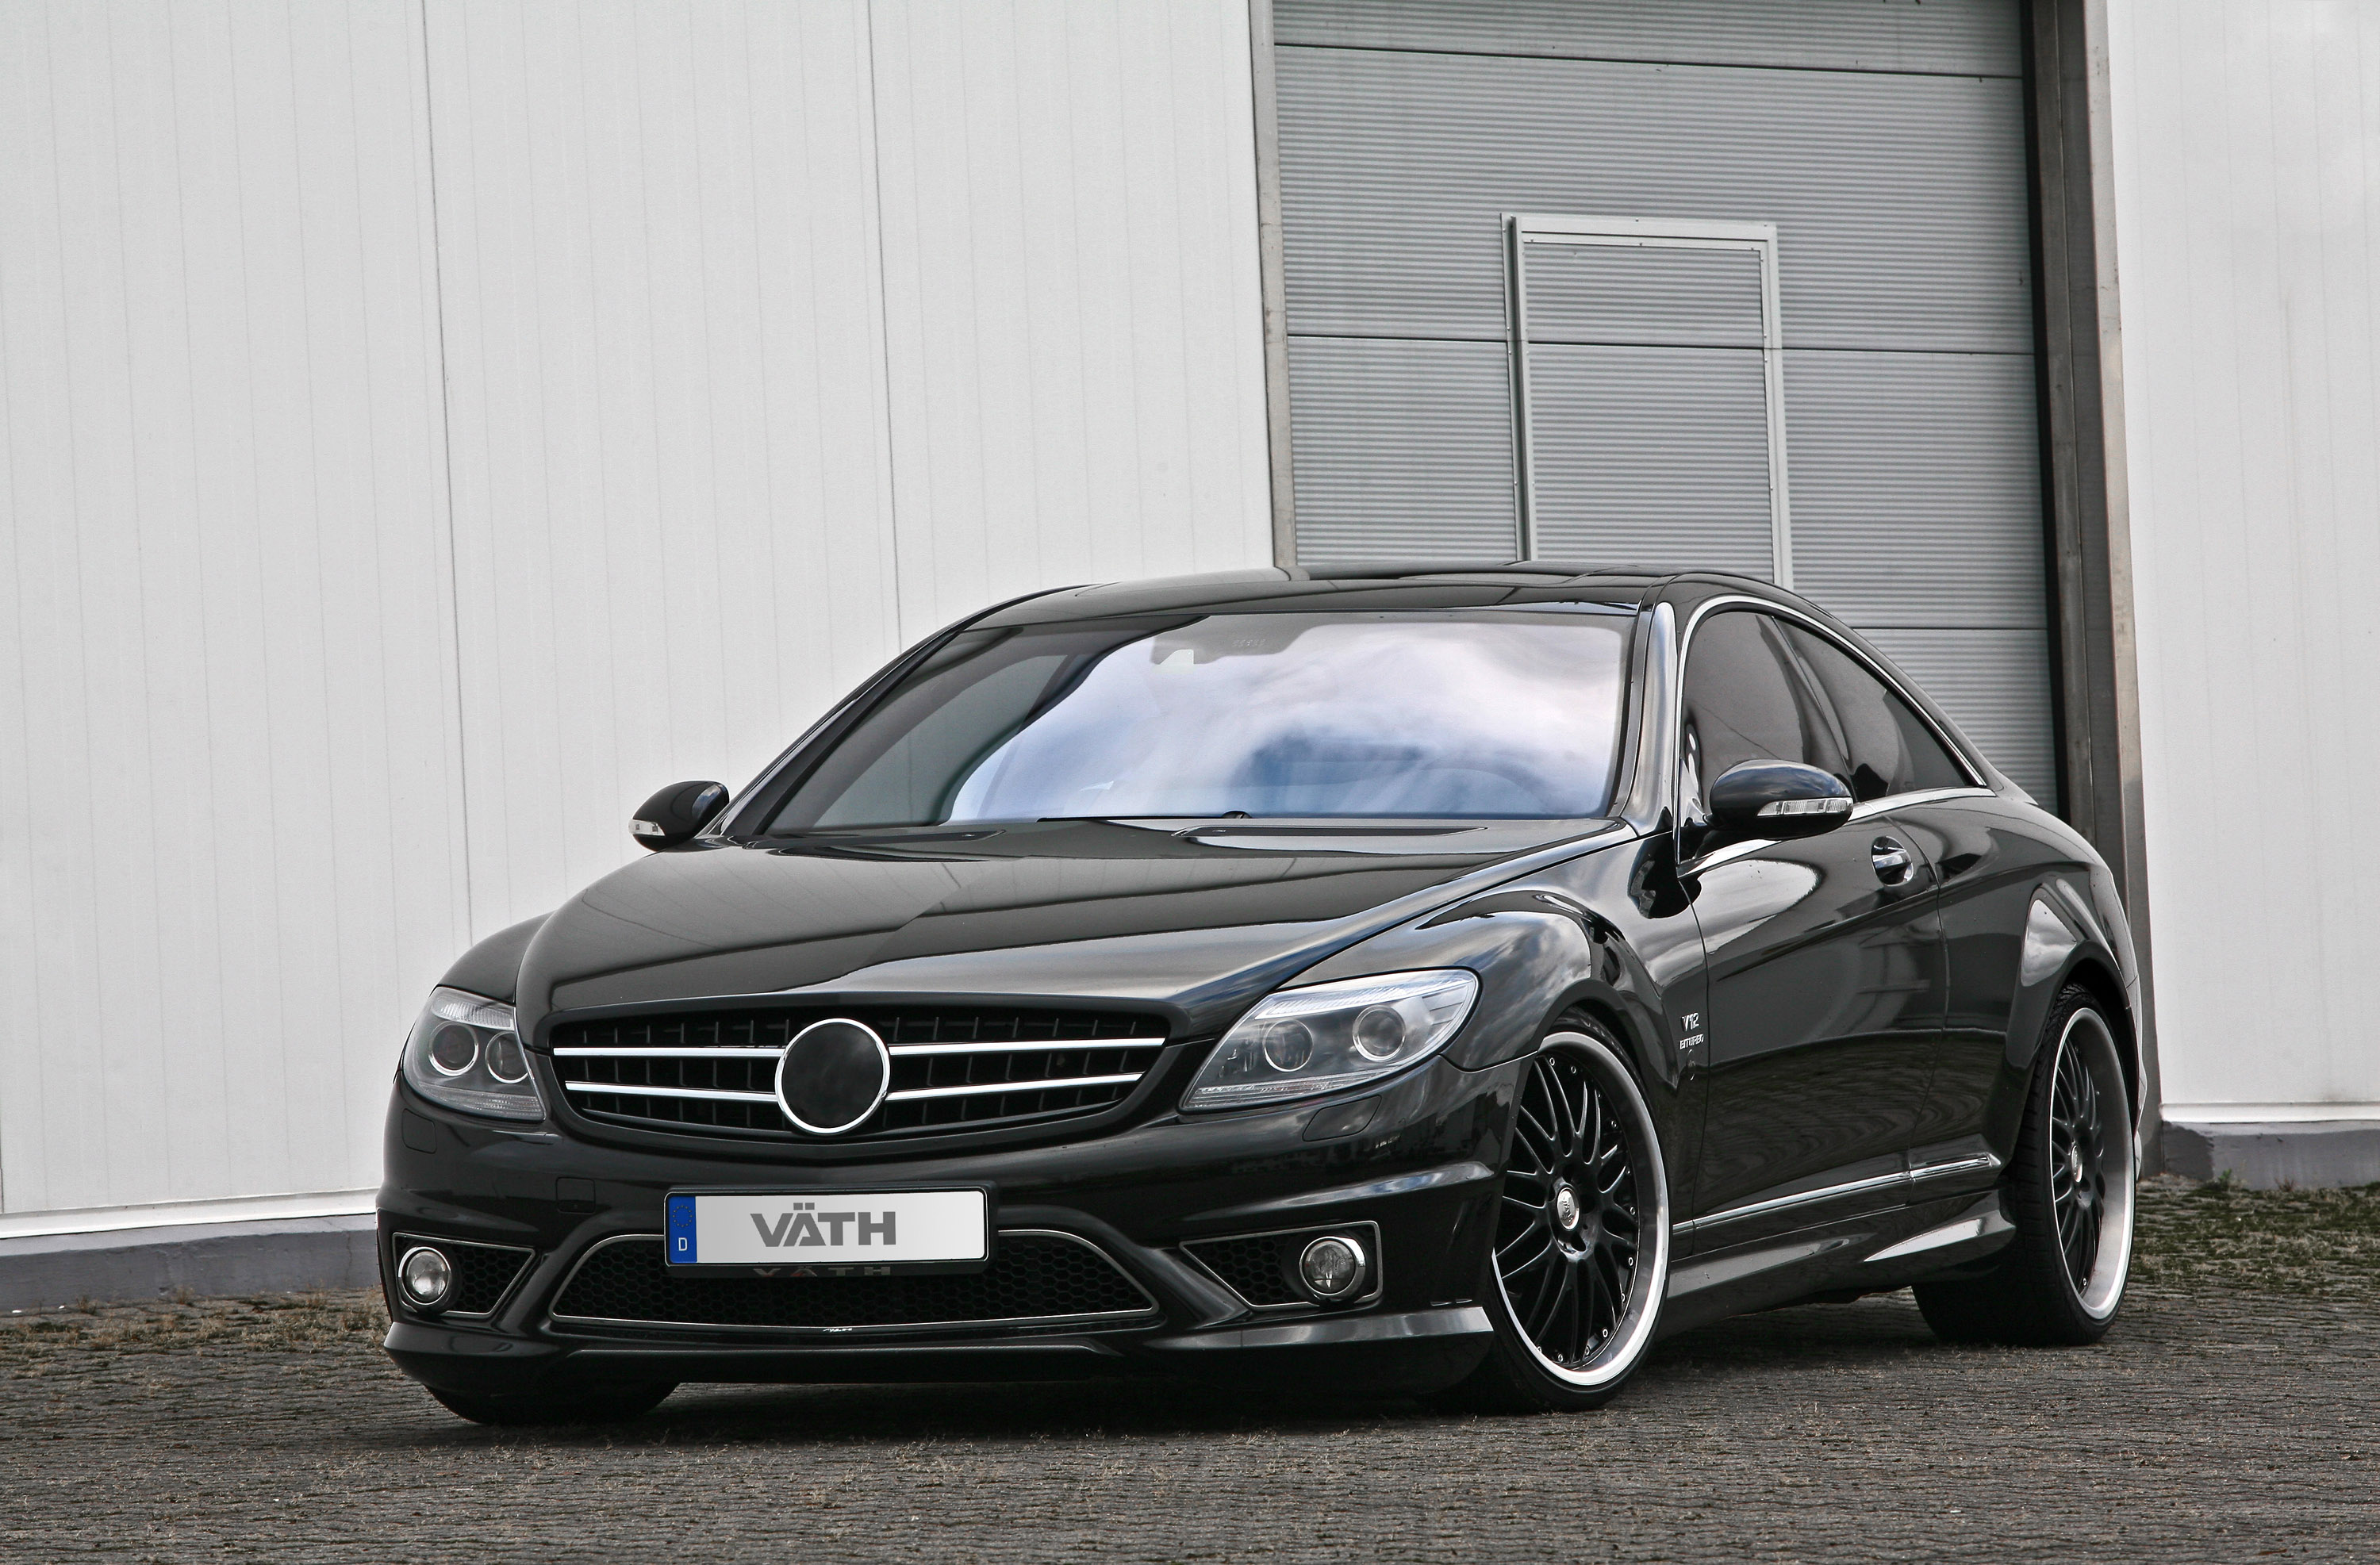 Vath cl 65 amg offers luxury and power at whole new level for Performance mercedes benz